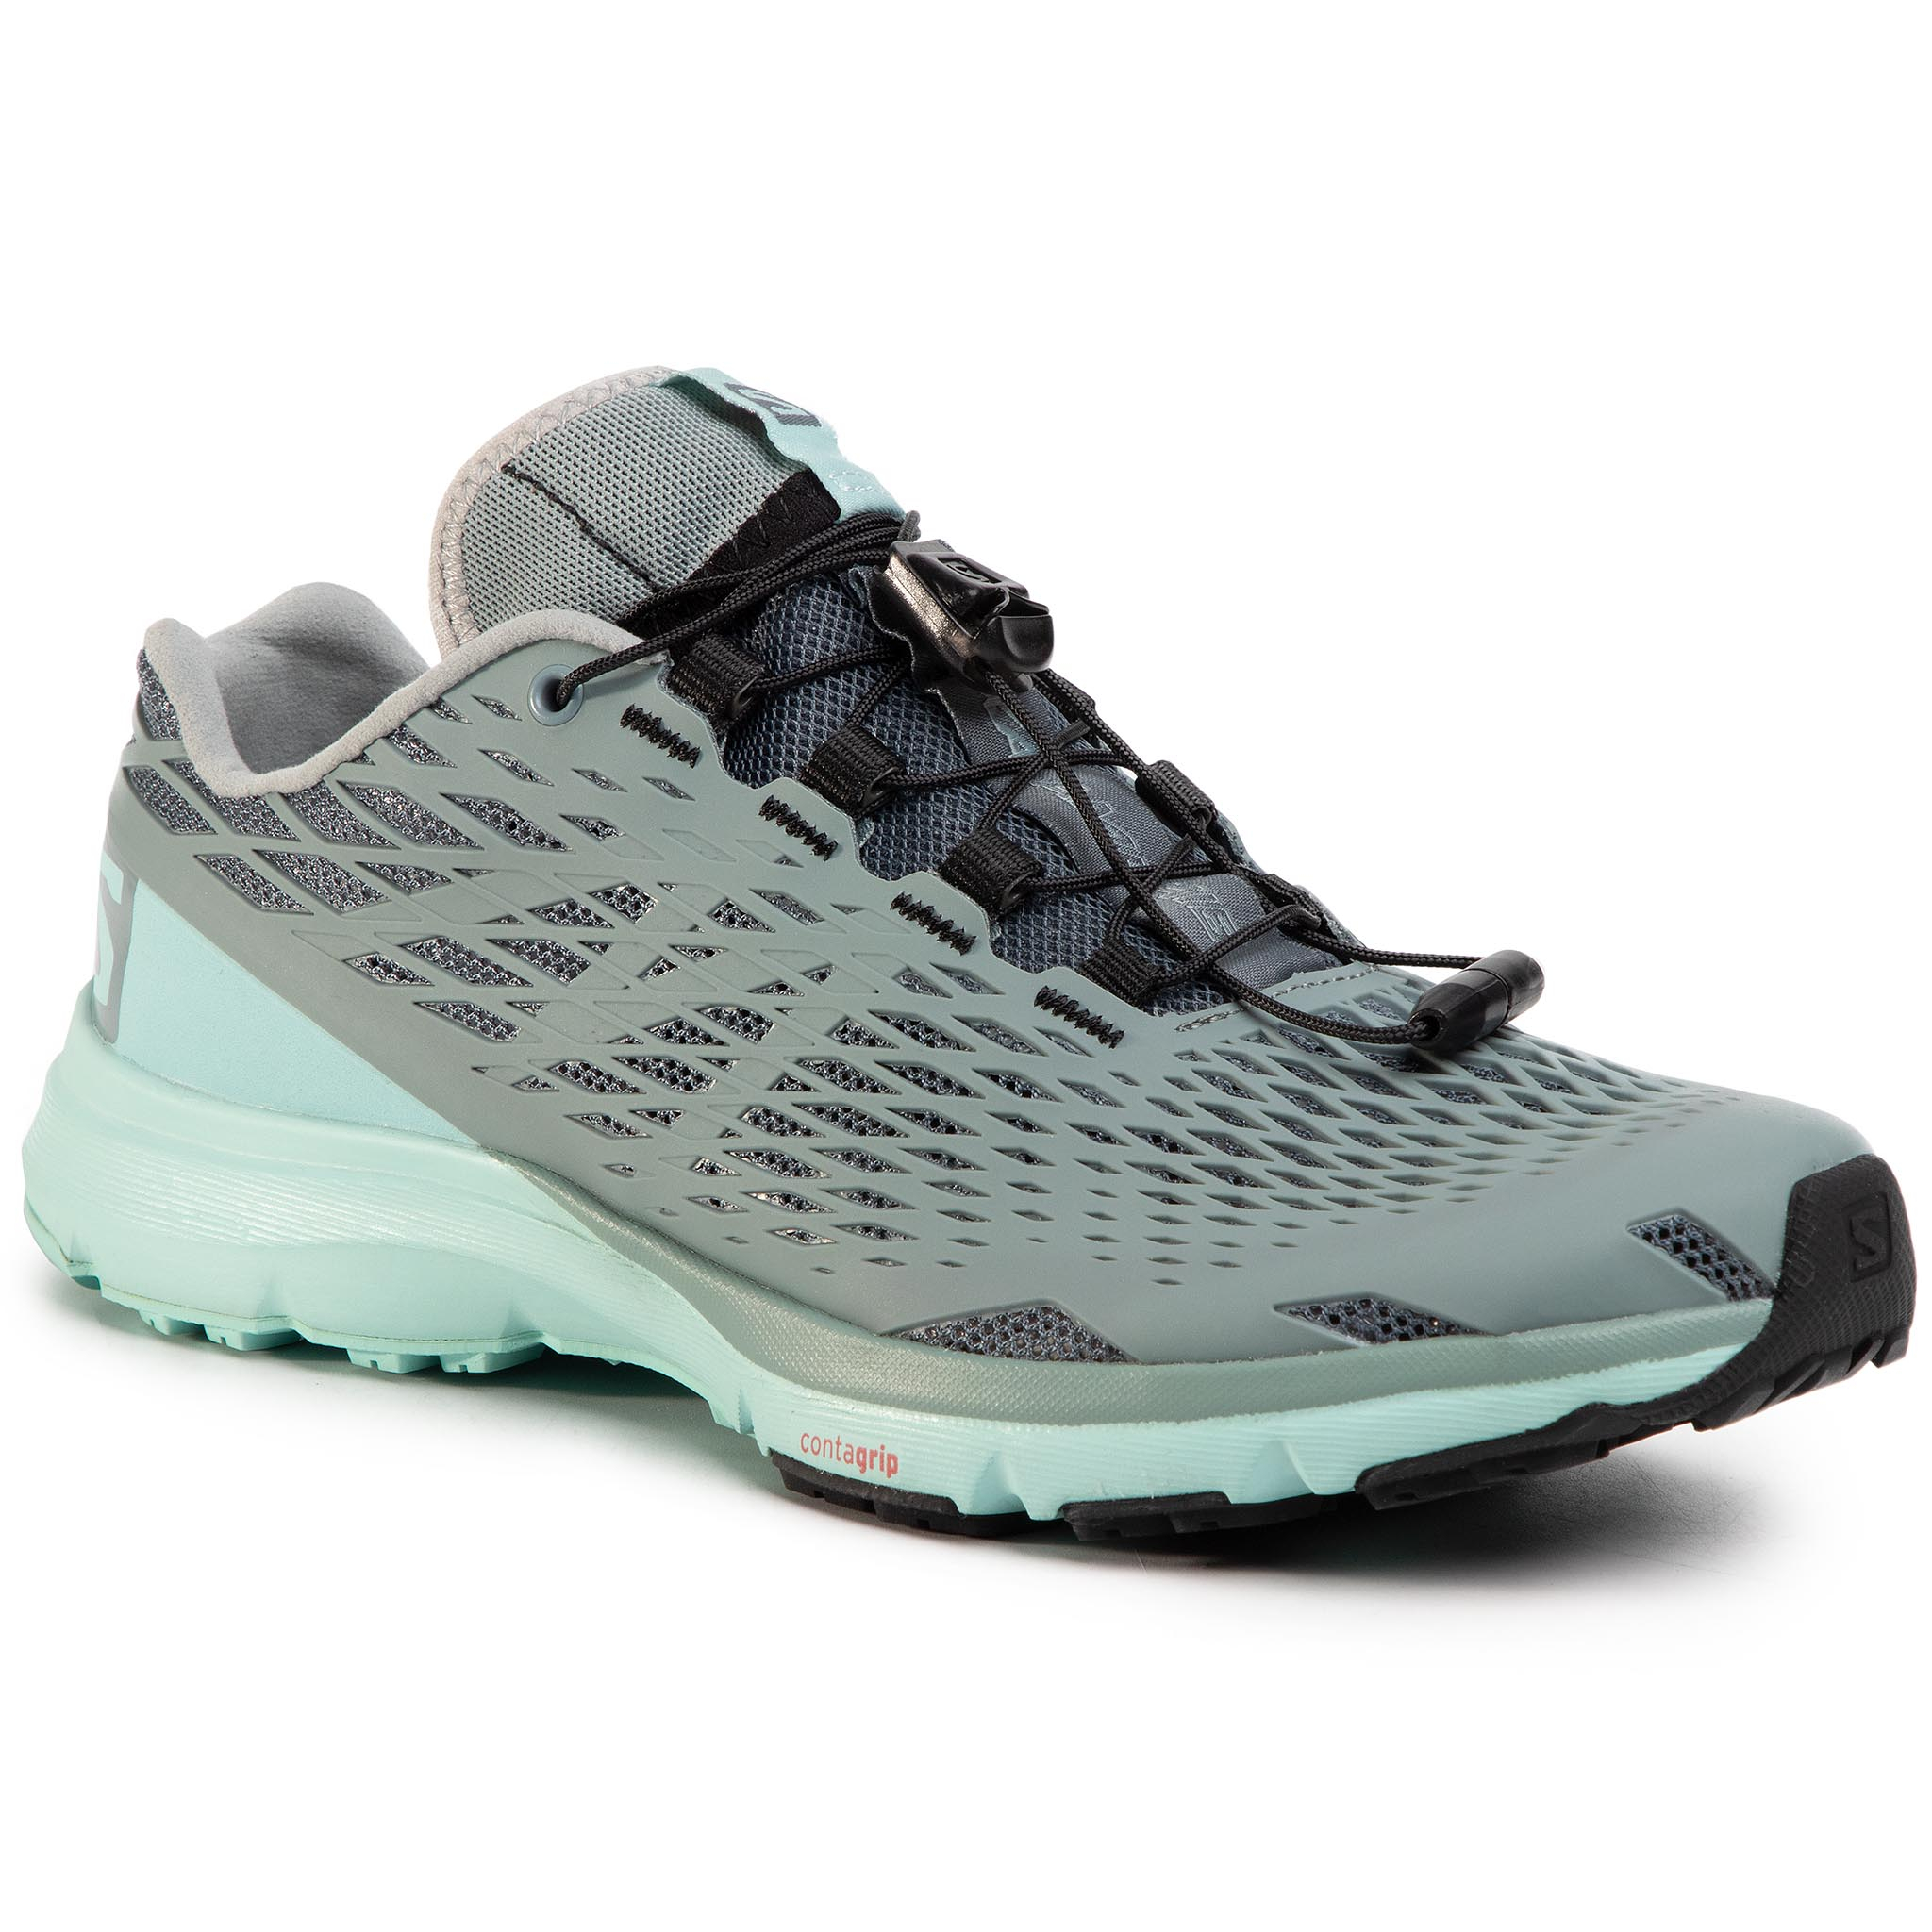 Trekkings Salomon - Xa Amphib W 401563 20 V0 Storm Weather/Lead/Canal Blue imagine epantofi.ro 2021